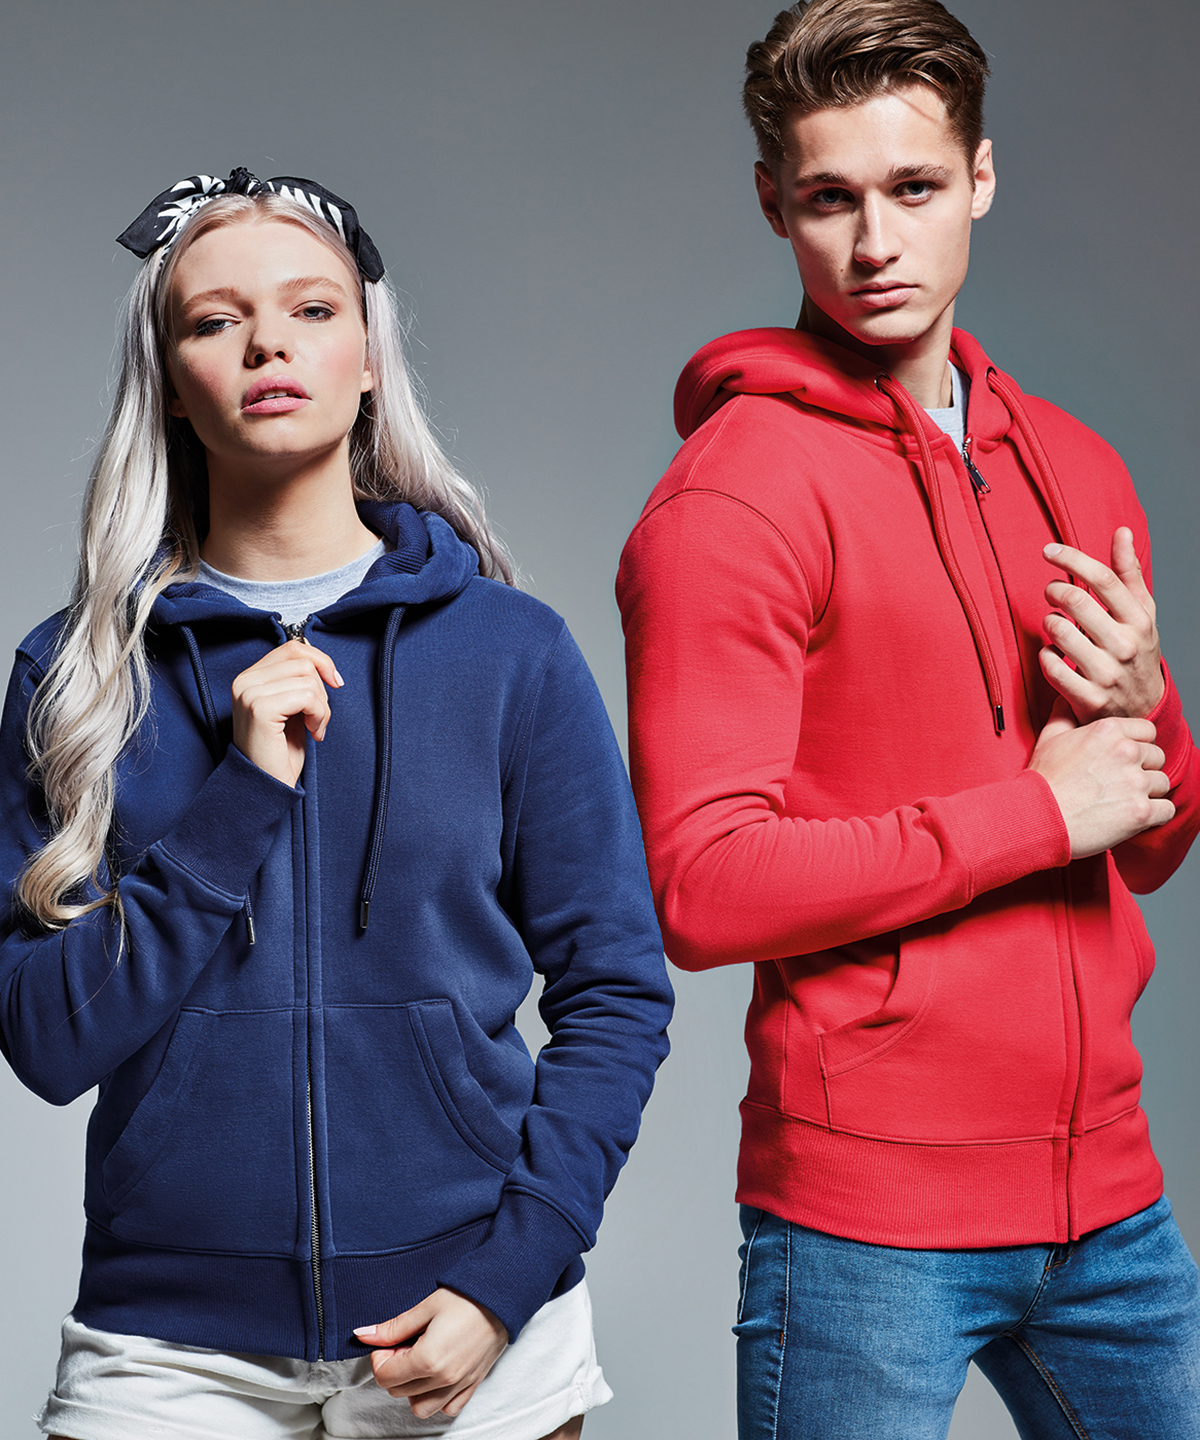 Studio photo with a man and woman wearing the Anthem zip hoodie (AM002).